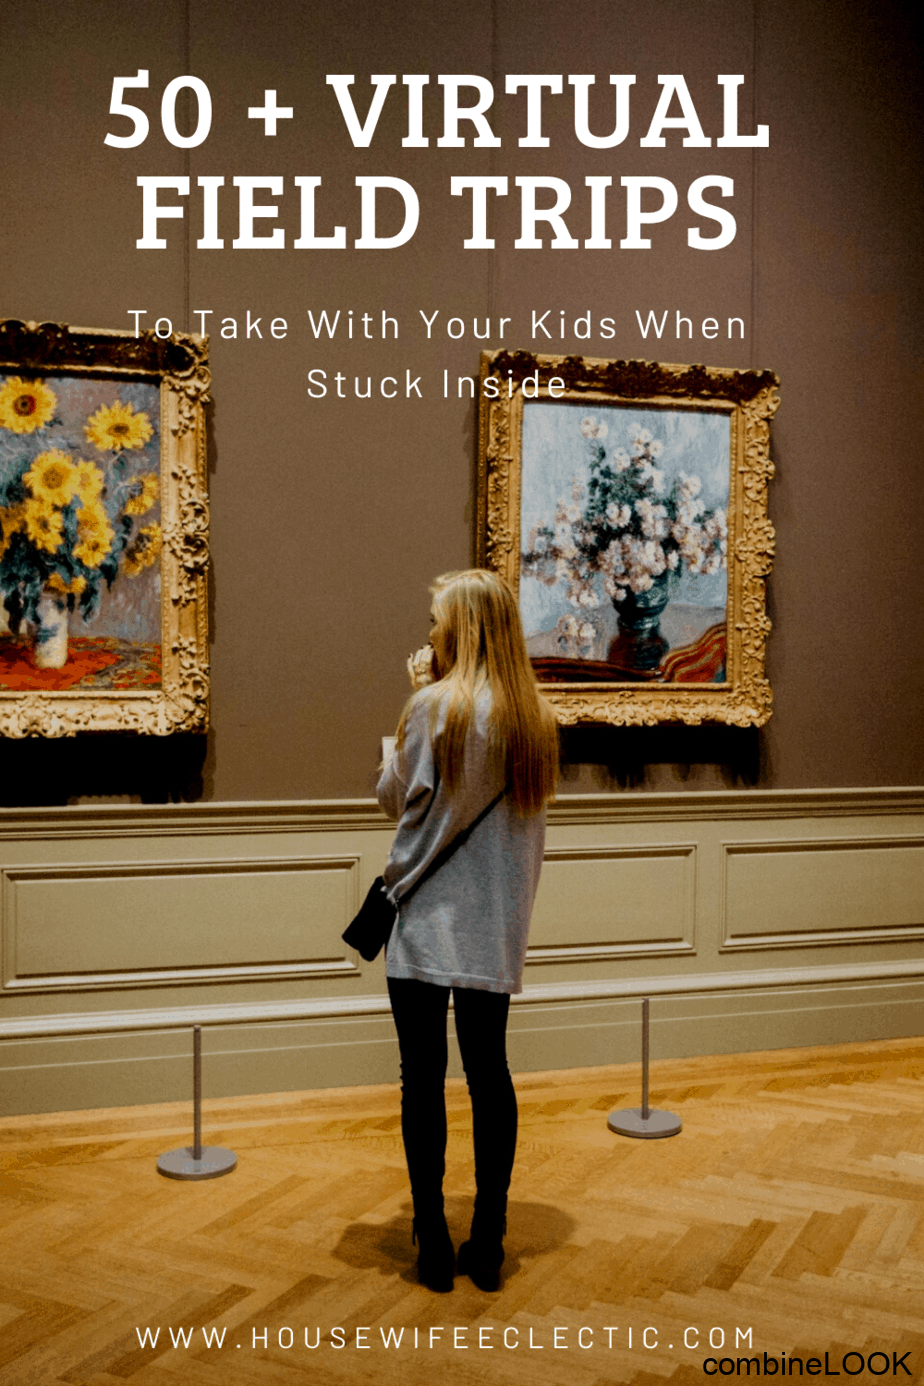 50+ Virtual Field Trips To Take With Your Kids - Housewife Eclectic#eclectic #field #housewife #kids #trips #virtual